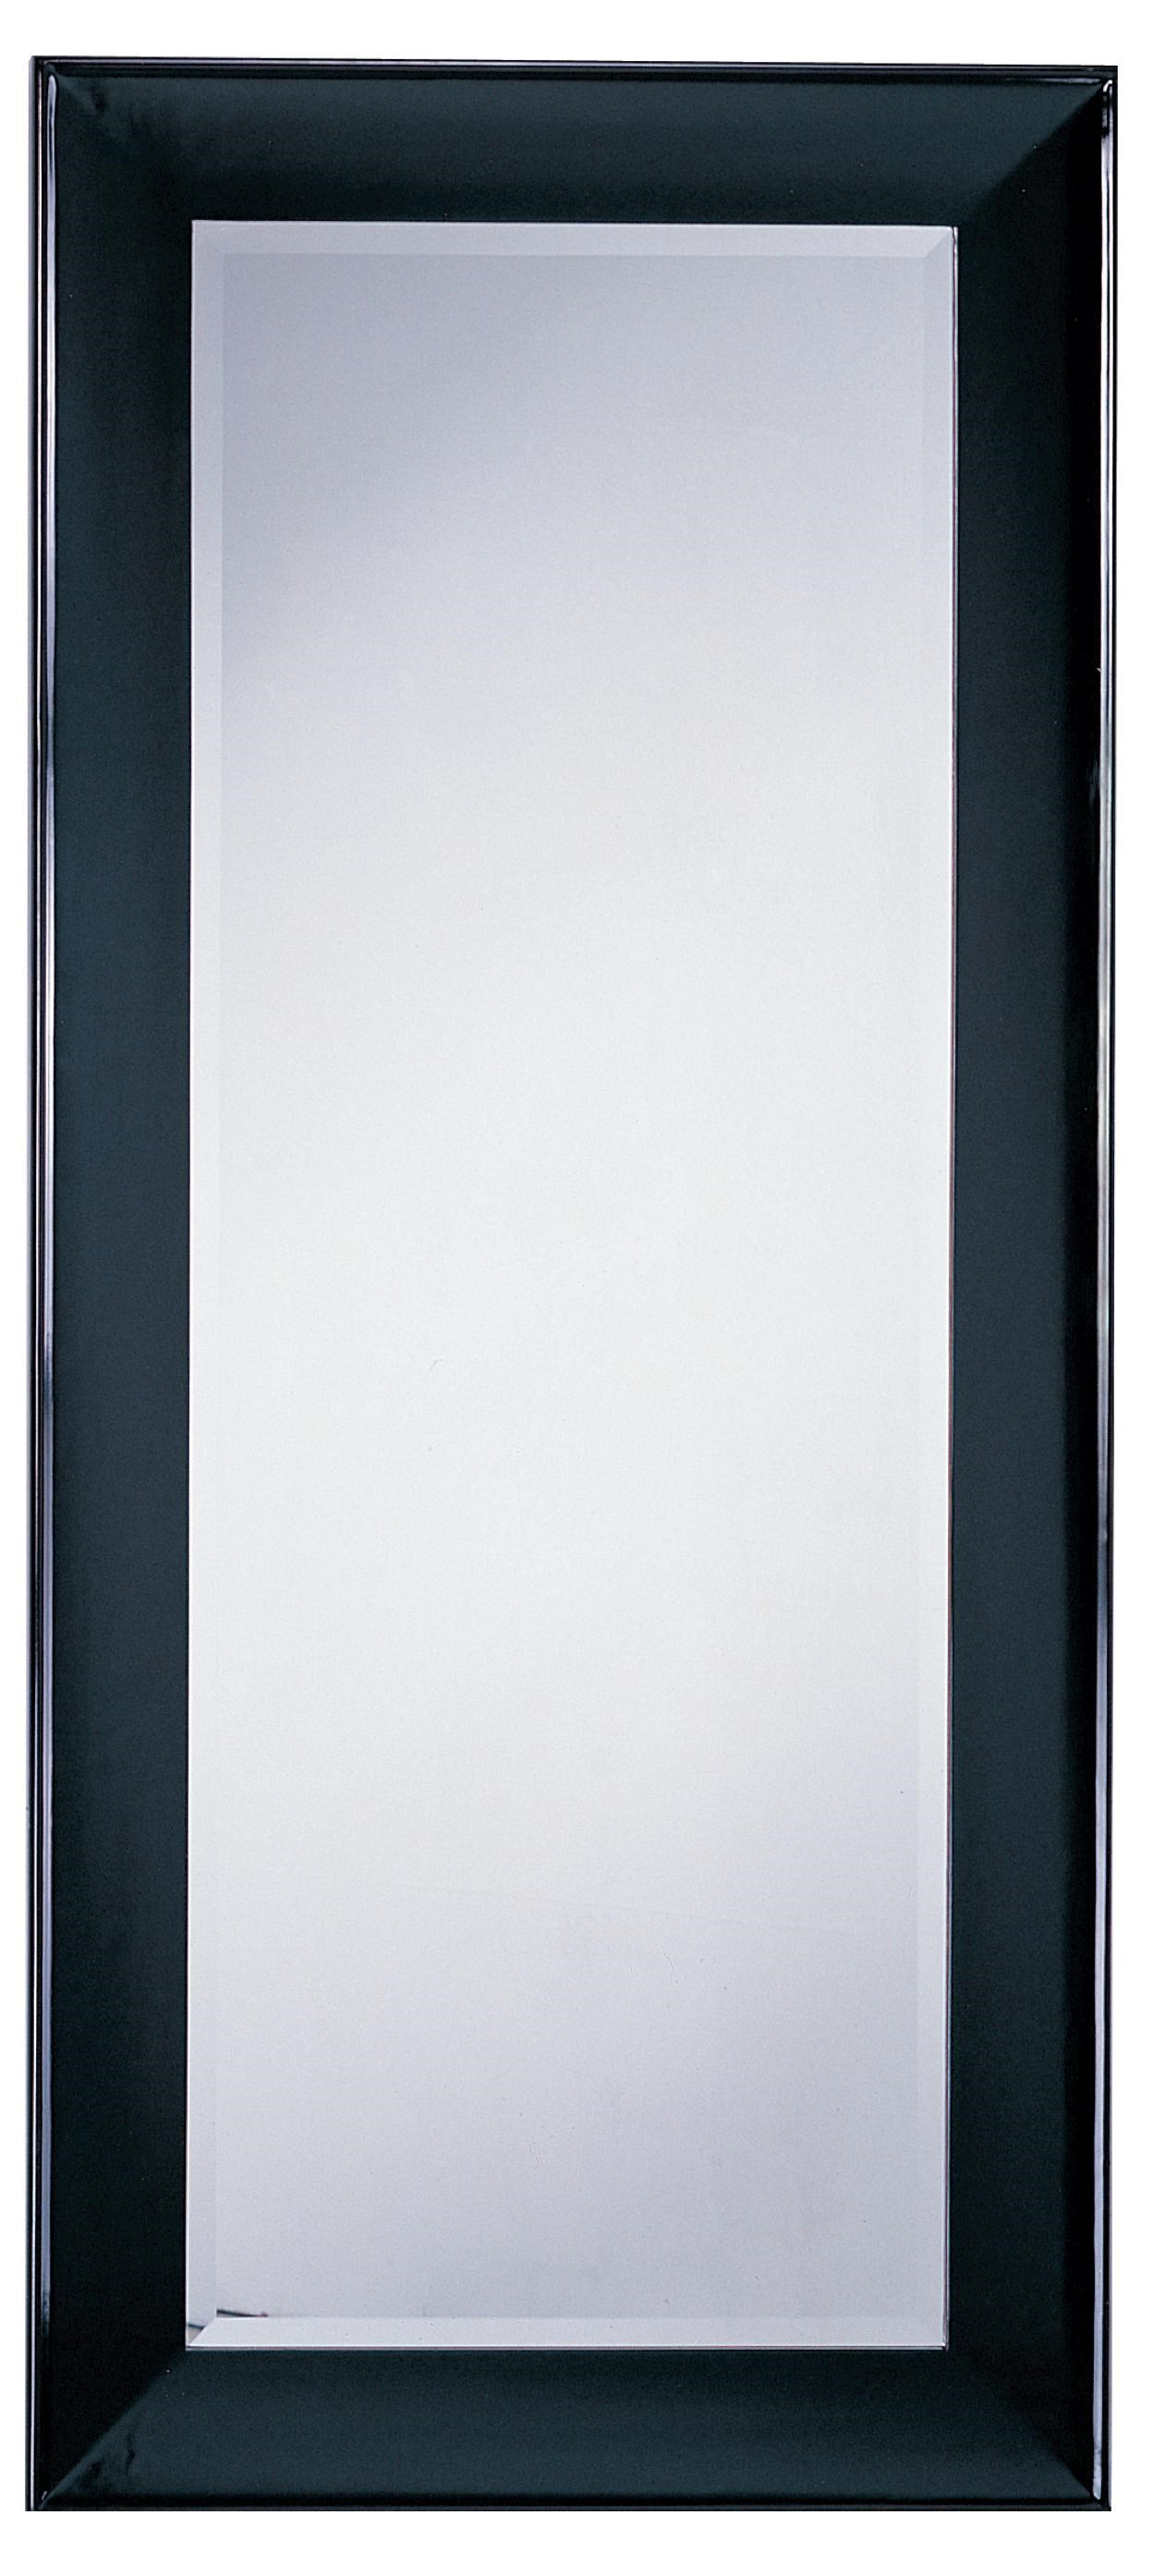 Ashley bedroom furniture millenium collection - Coaster Accent Mirrors Beveled Floor Mirror Value City